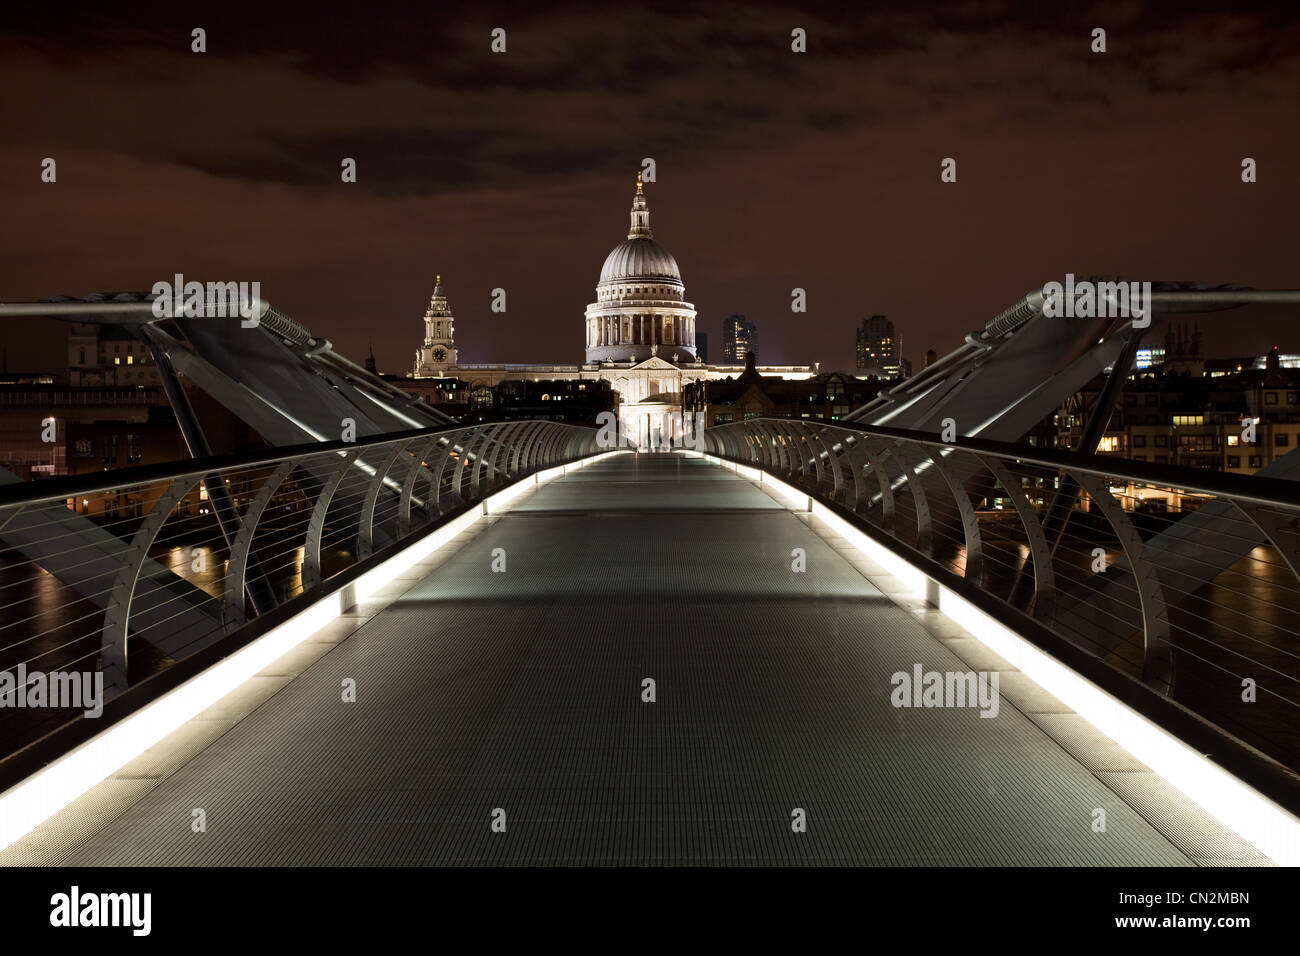 Millennium Bridge towards St Paul's Cathedral, London, UK - Stock Image